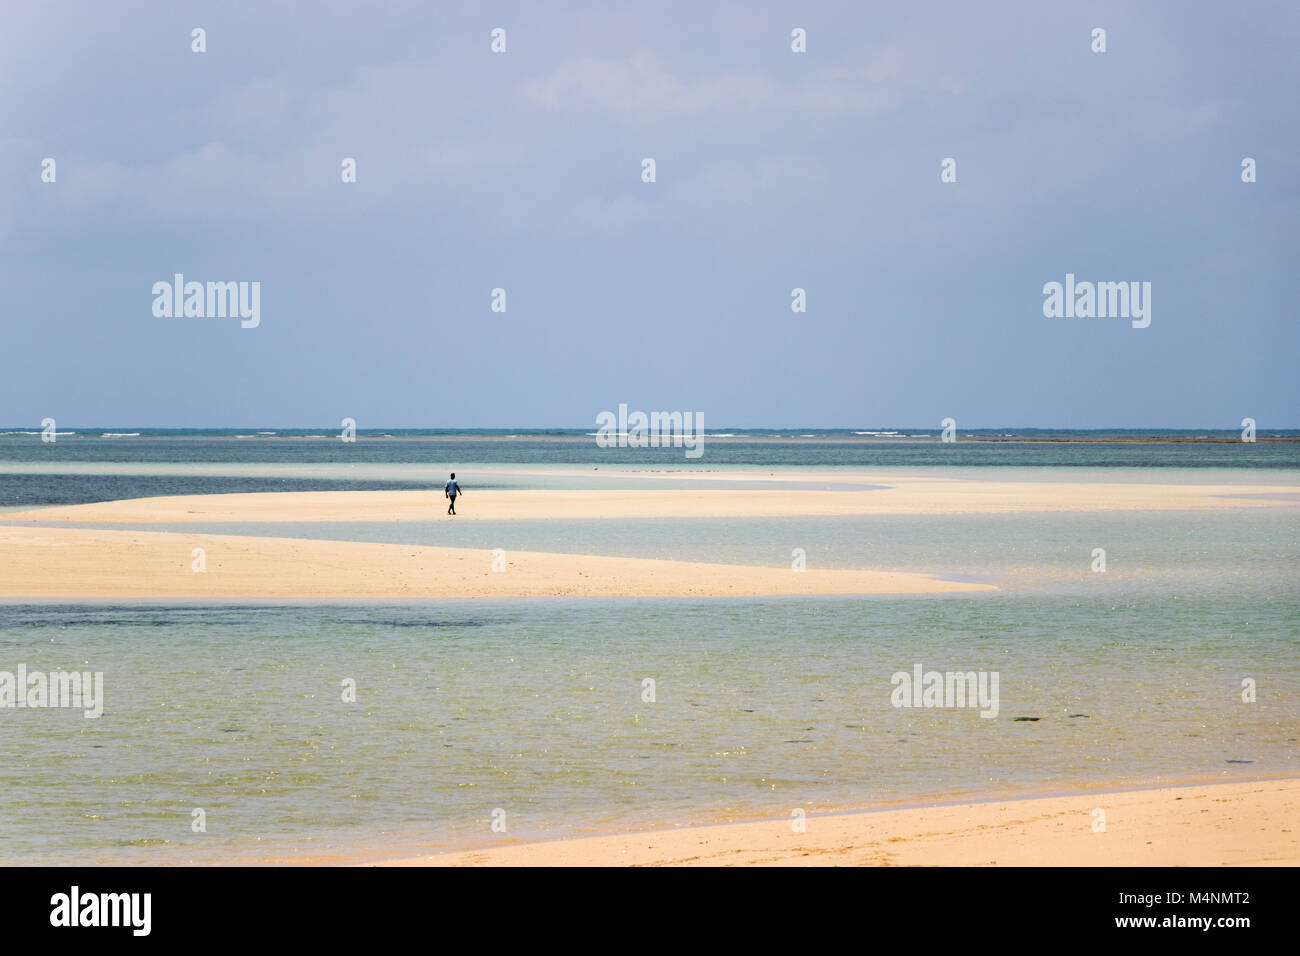 Lone person walking desert island beach in Mozambique with turquoise sea - Stock Image